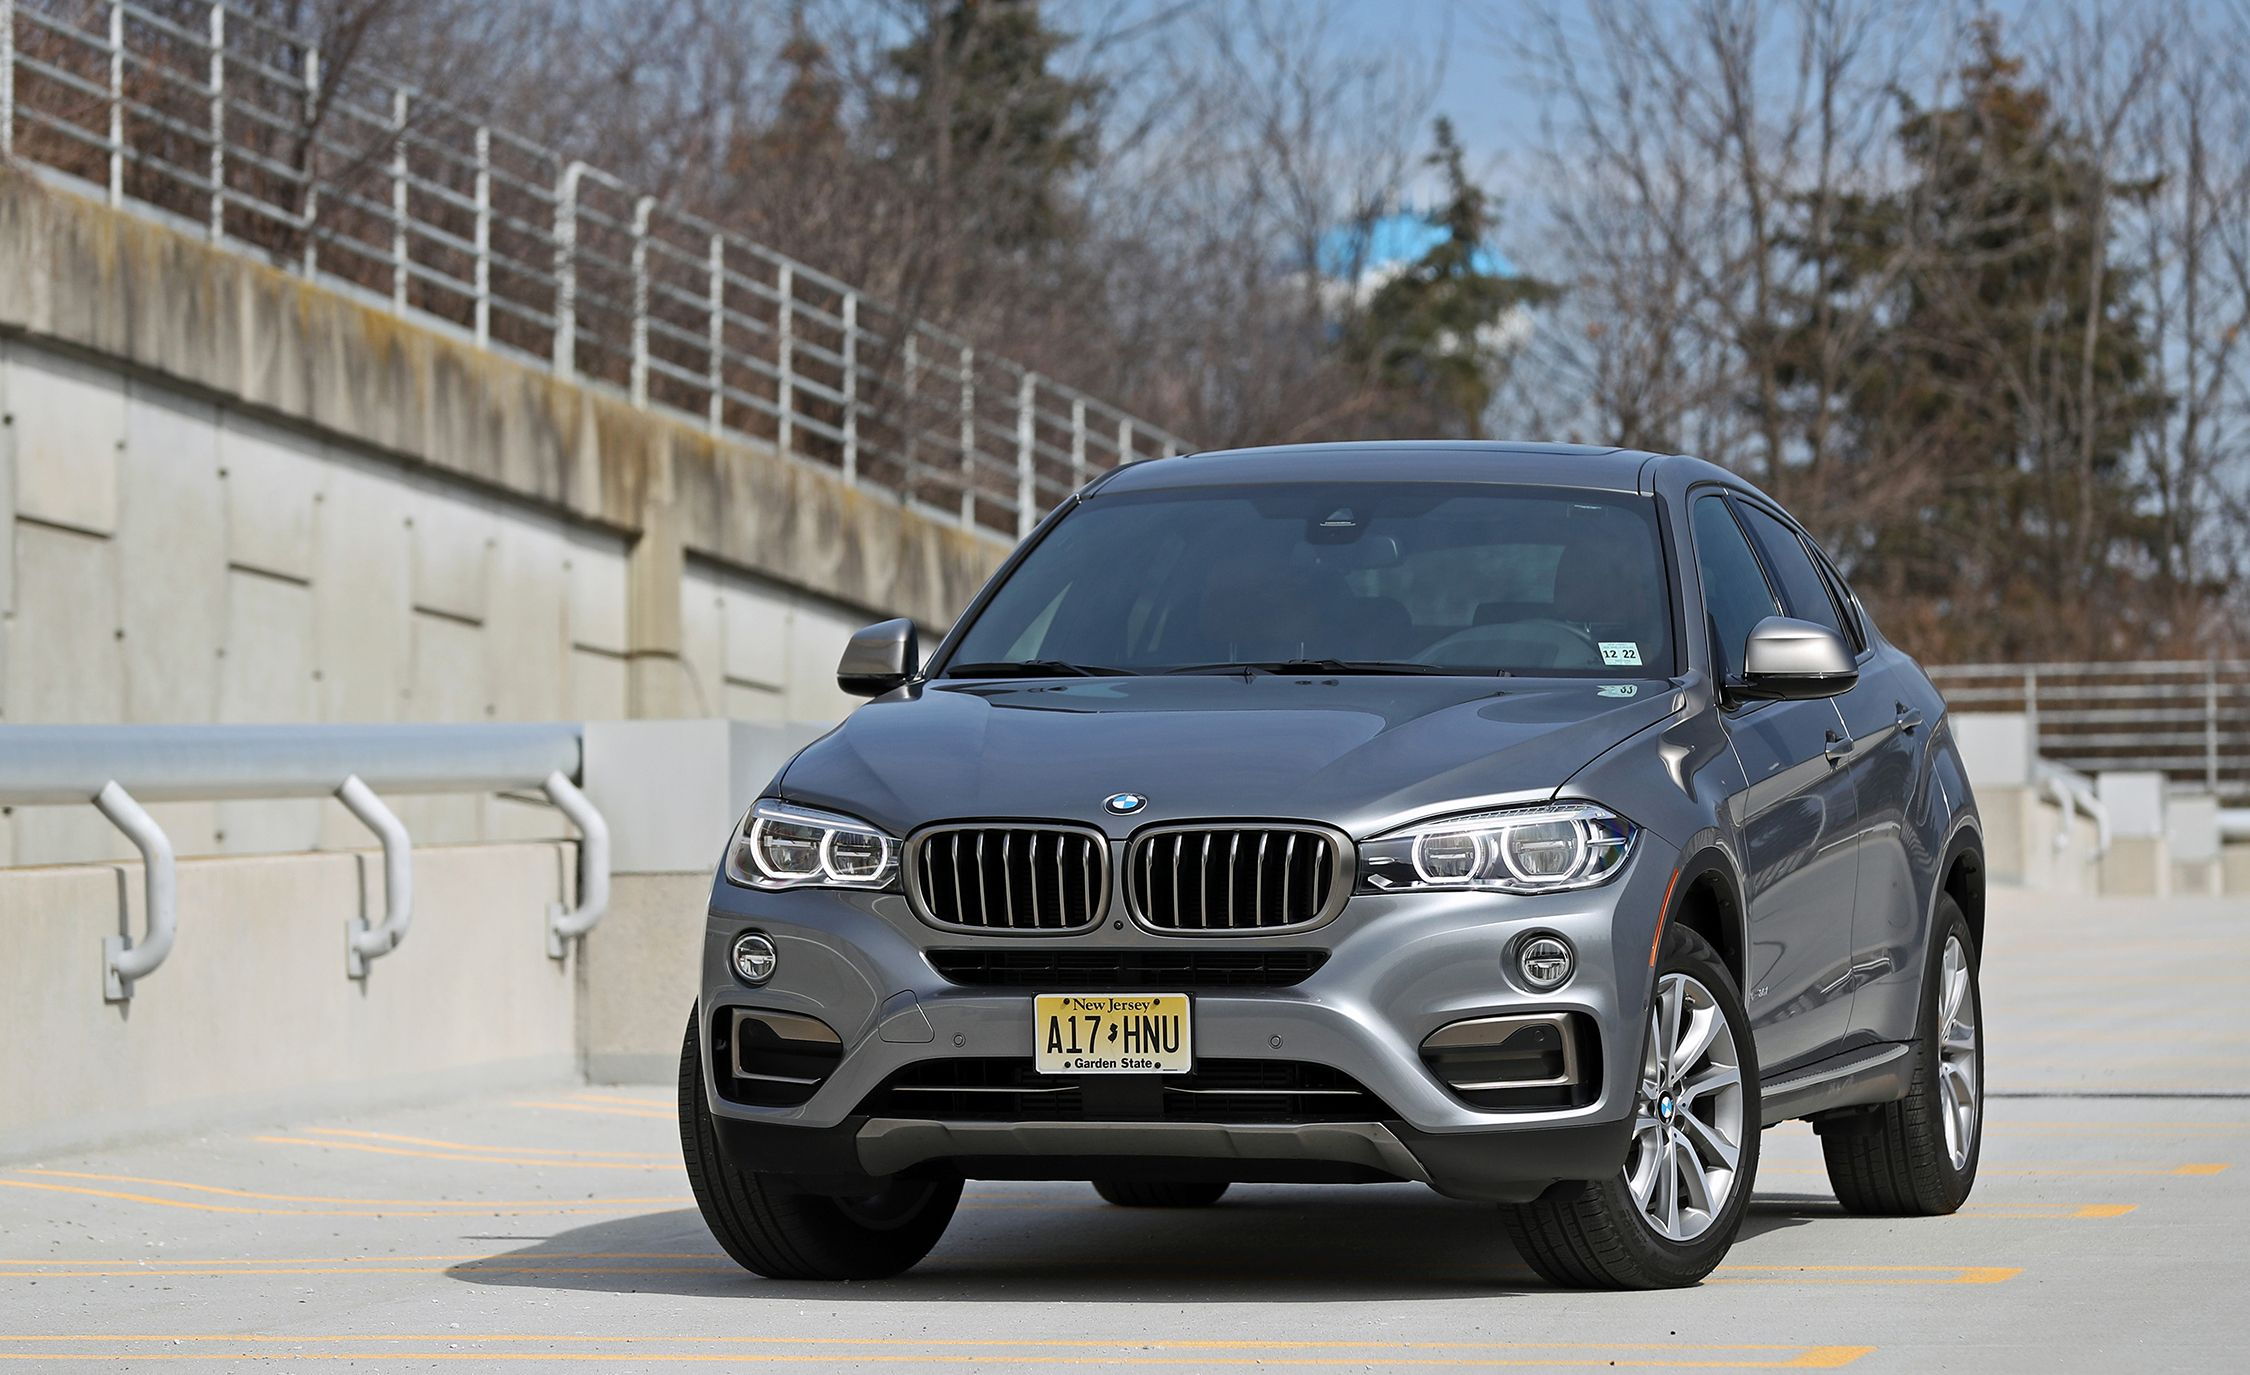 BMW X6 Reviews BMW X6 Price s and Specs